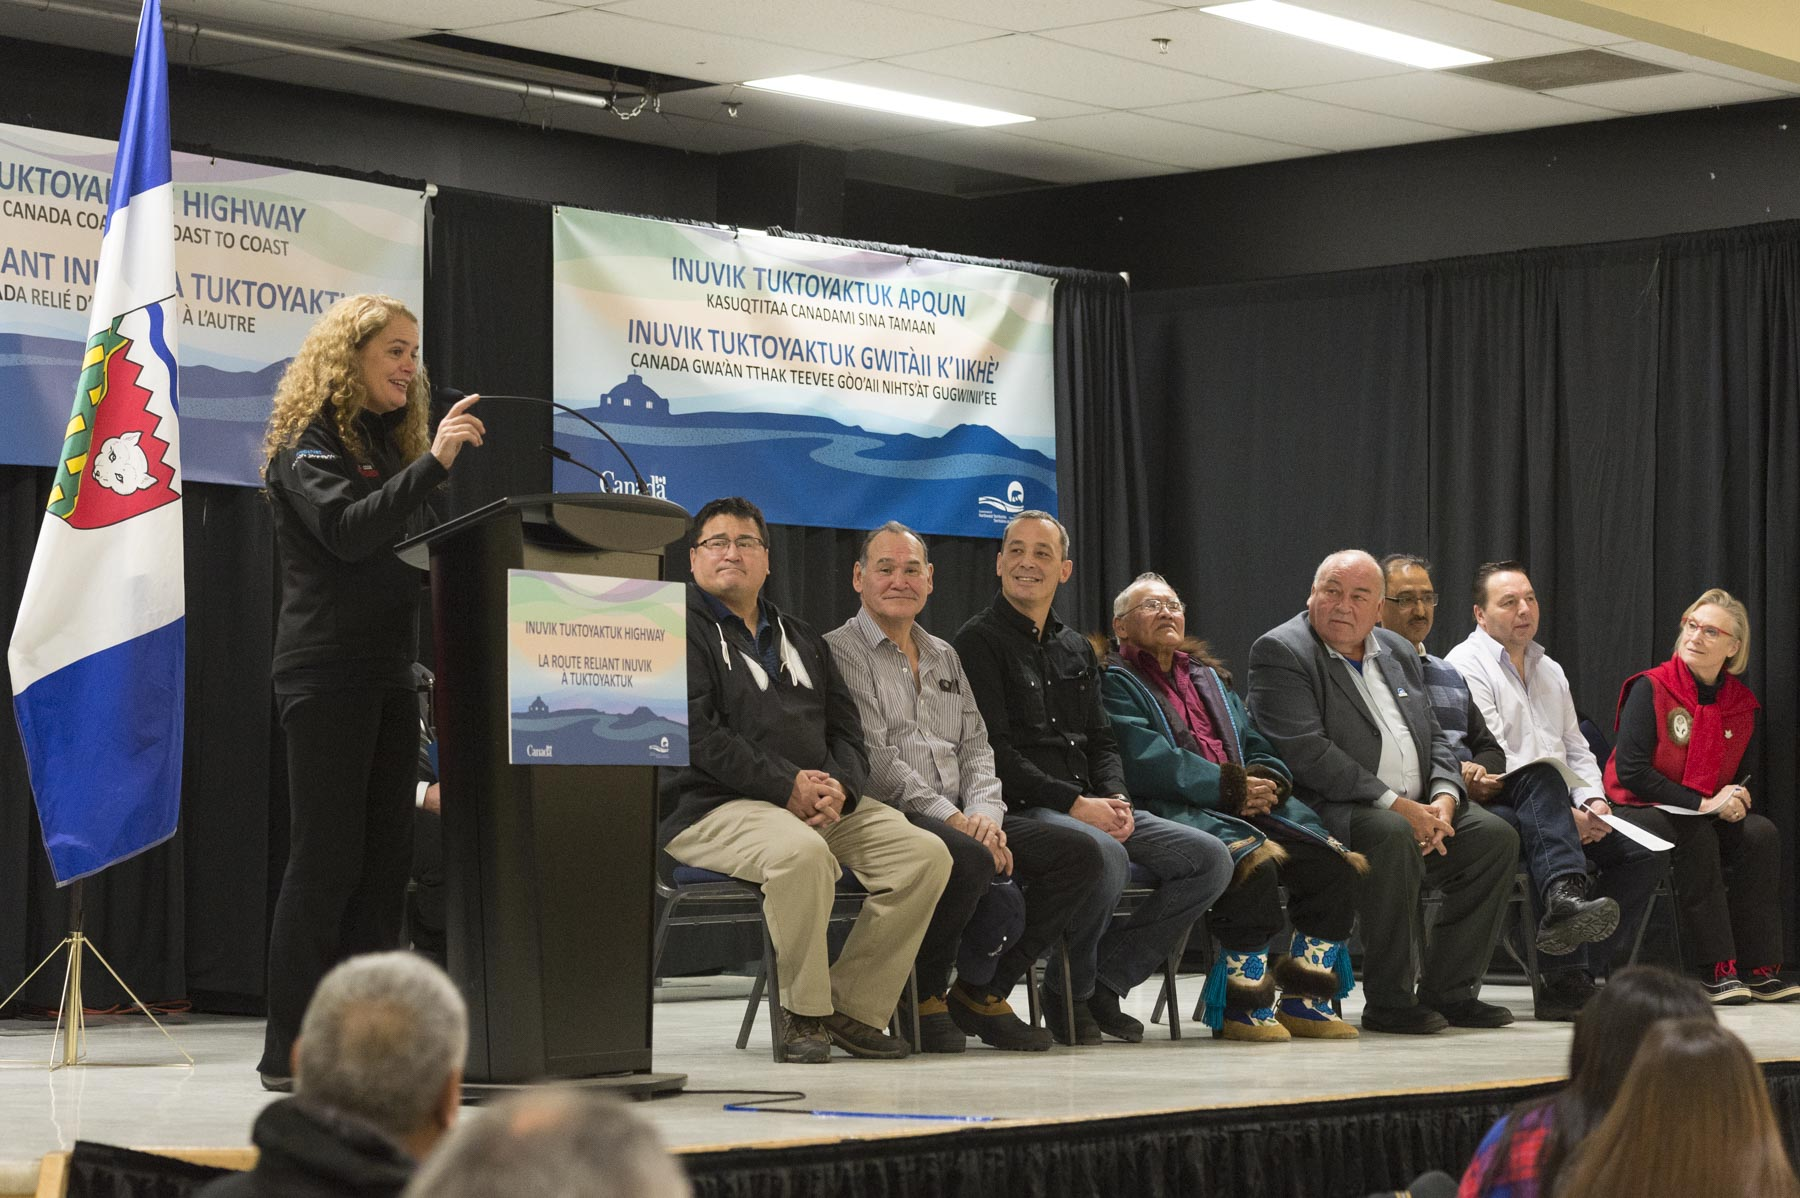 On Her Excellency's second day in the Northwest Territories, she traveled to Inuvik for the Opening Ceremonies of the Inuvik Tuktoyaktuk Highway.